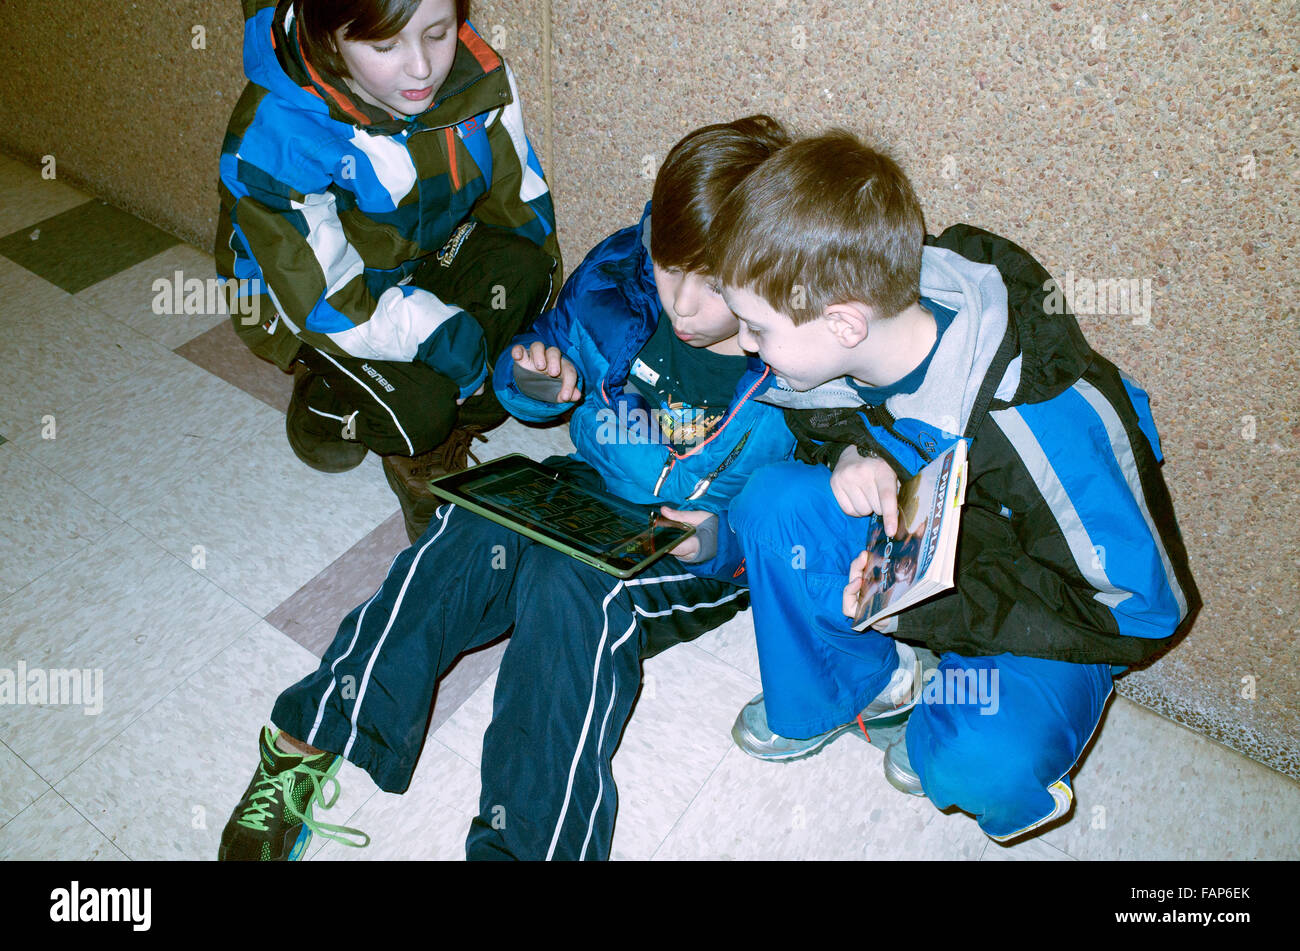 Three boys totally engrossed in playing video game on a tablet. St Paul Minnesota MN USA - Stock Image